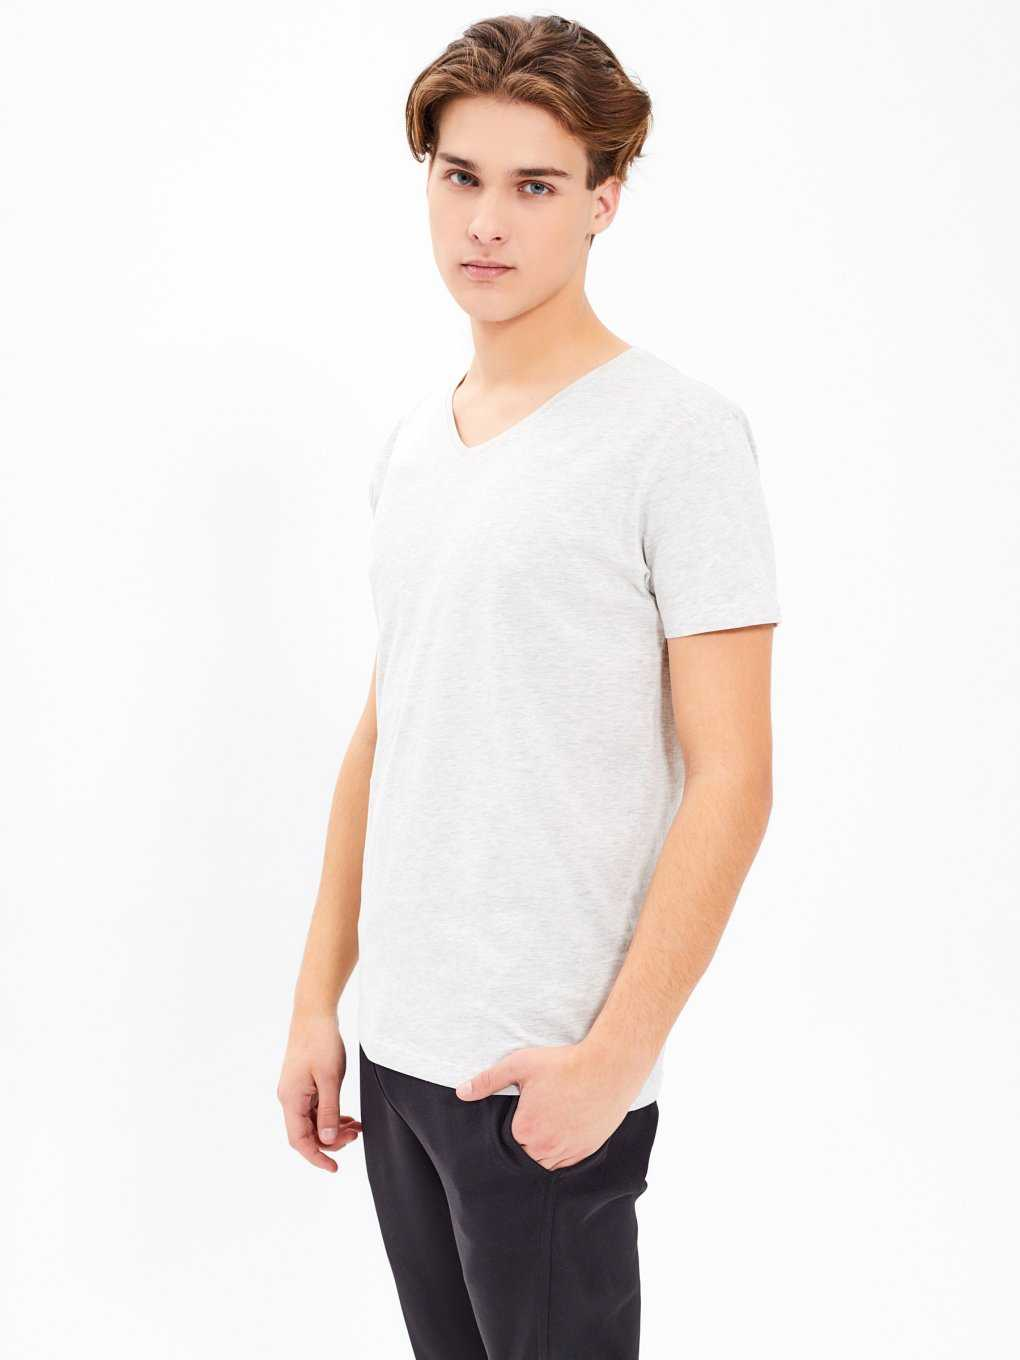 BASIC SLIM FIT V-NECK T-SHIRT